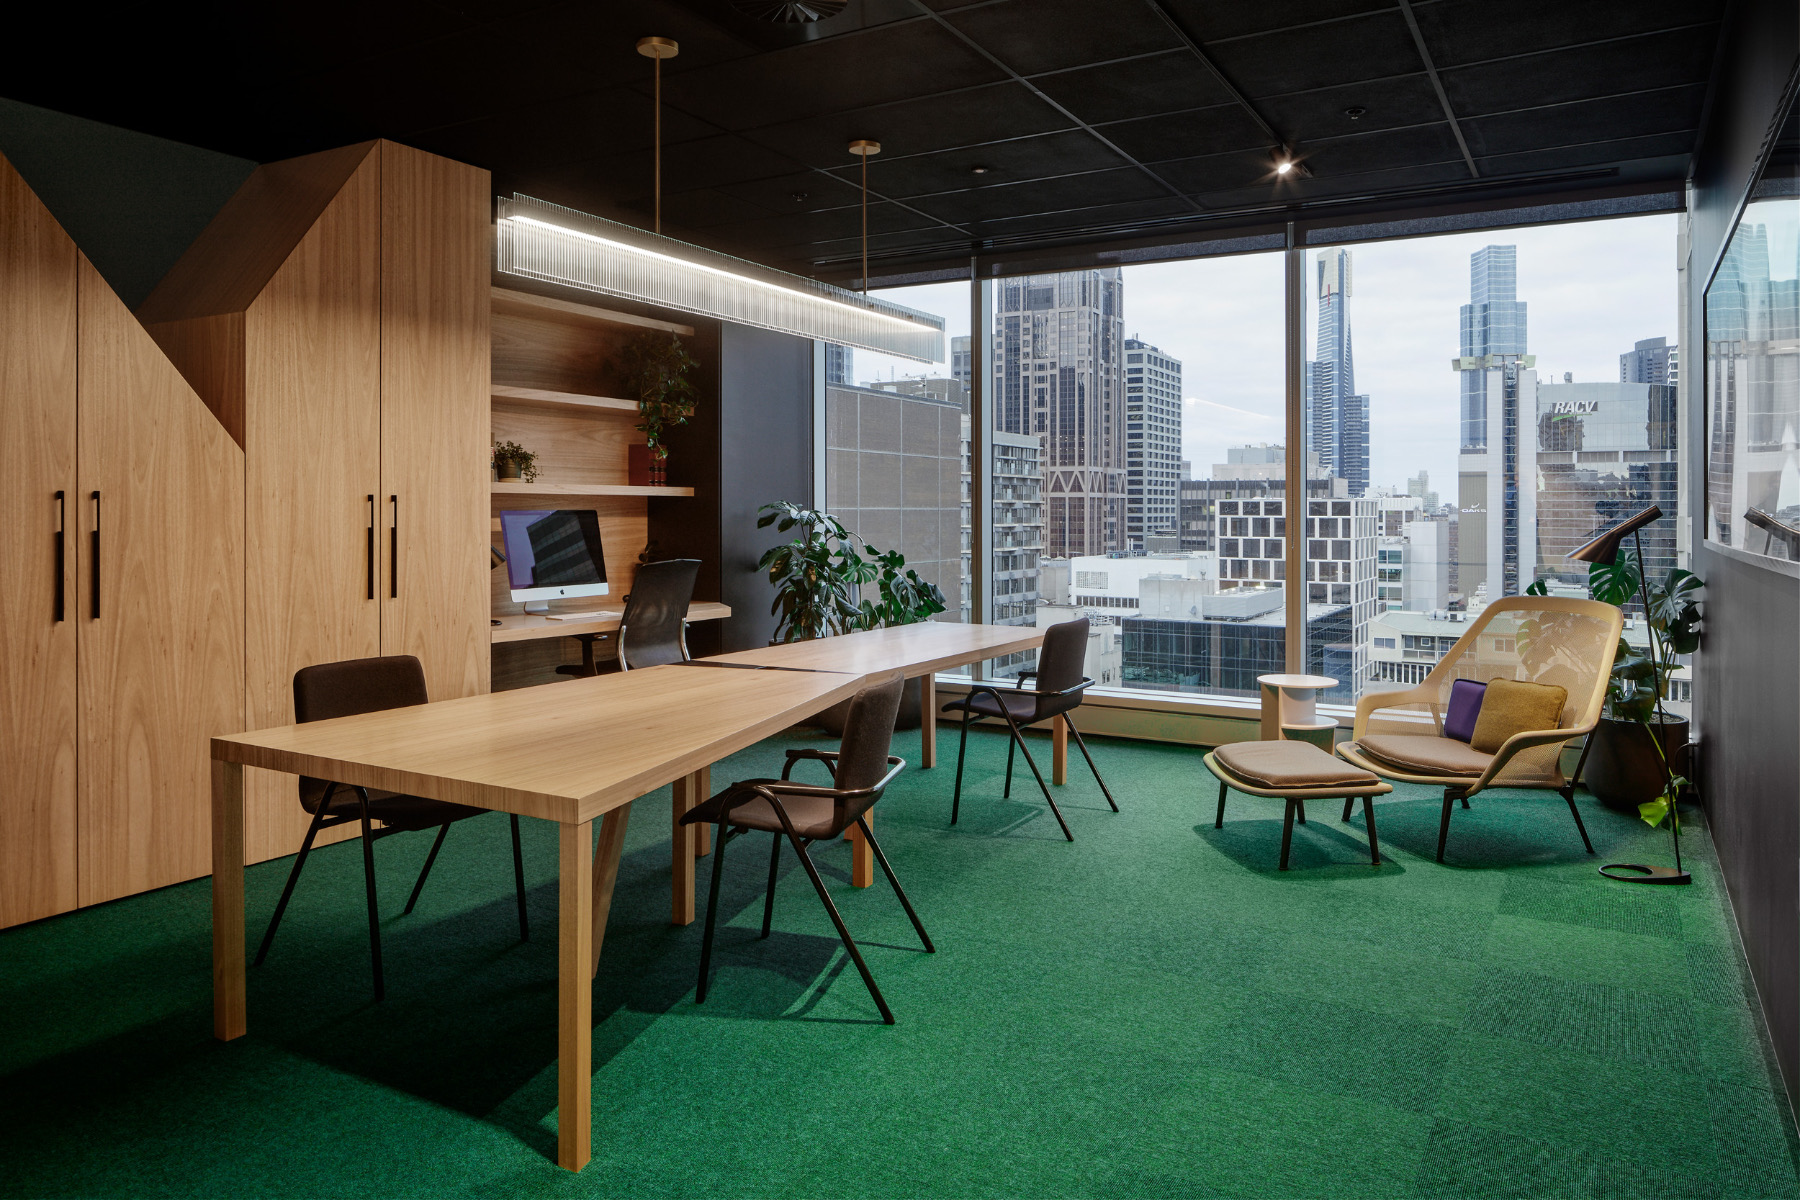 A Look Inside Private Law Firm Offices in Melbourne